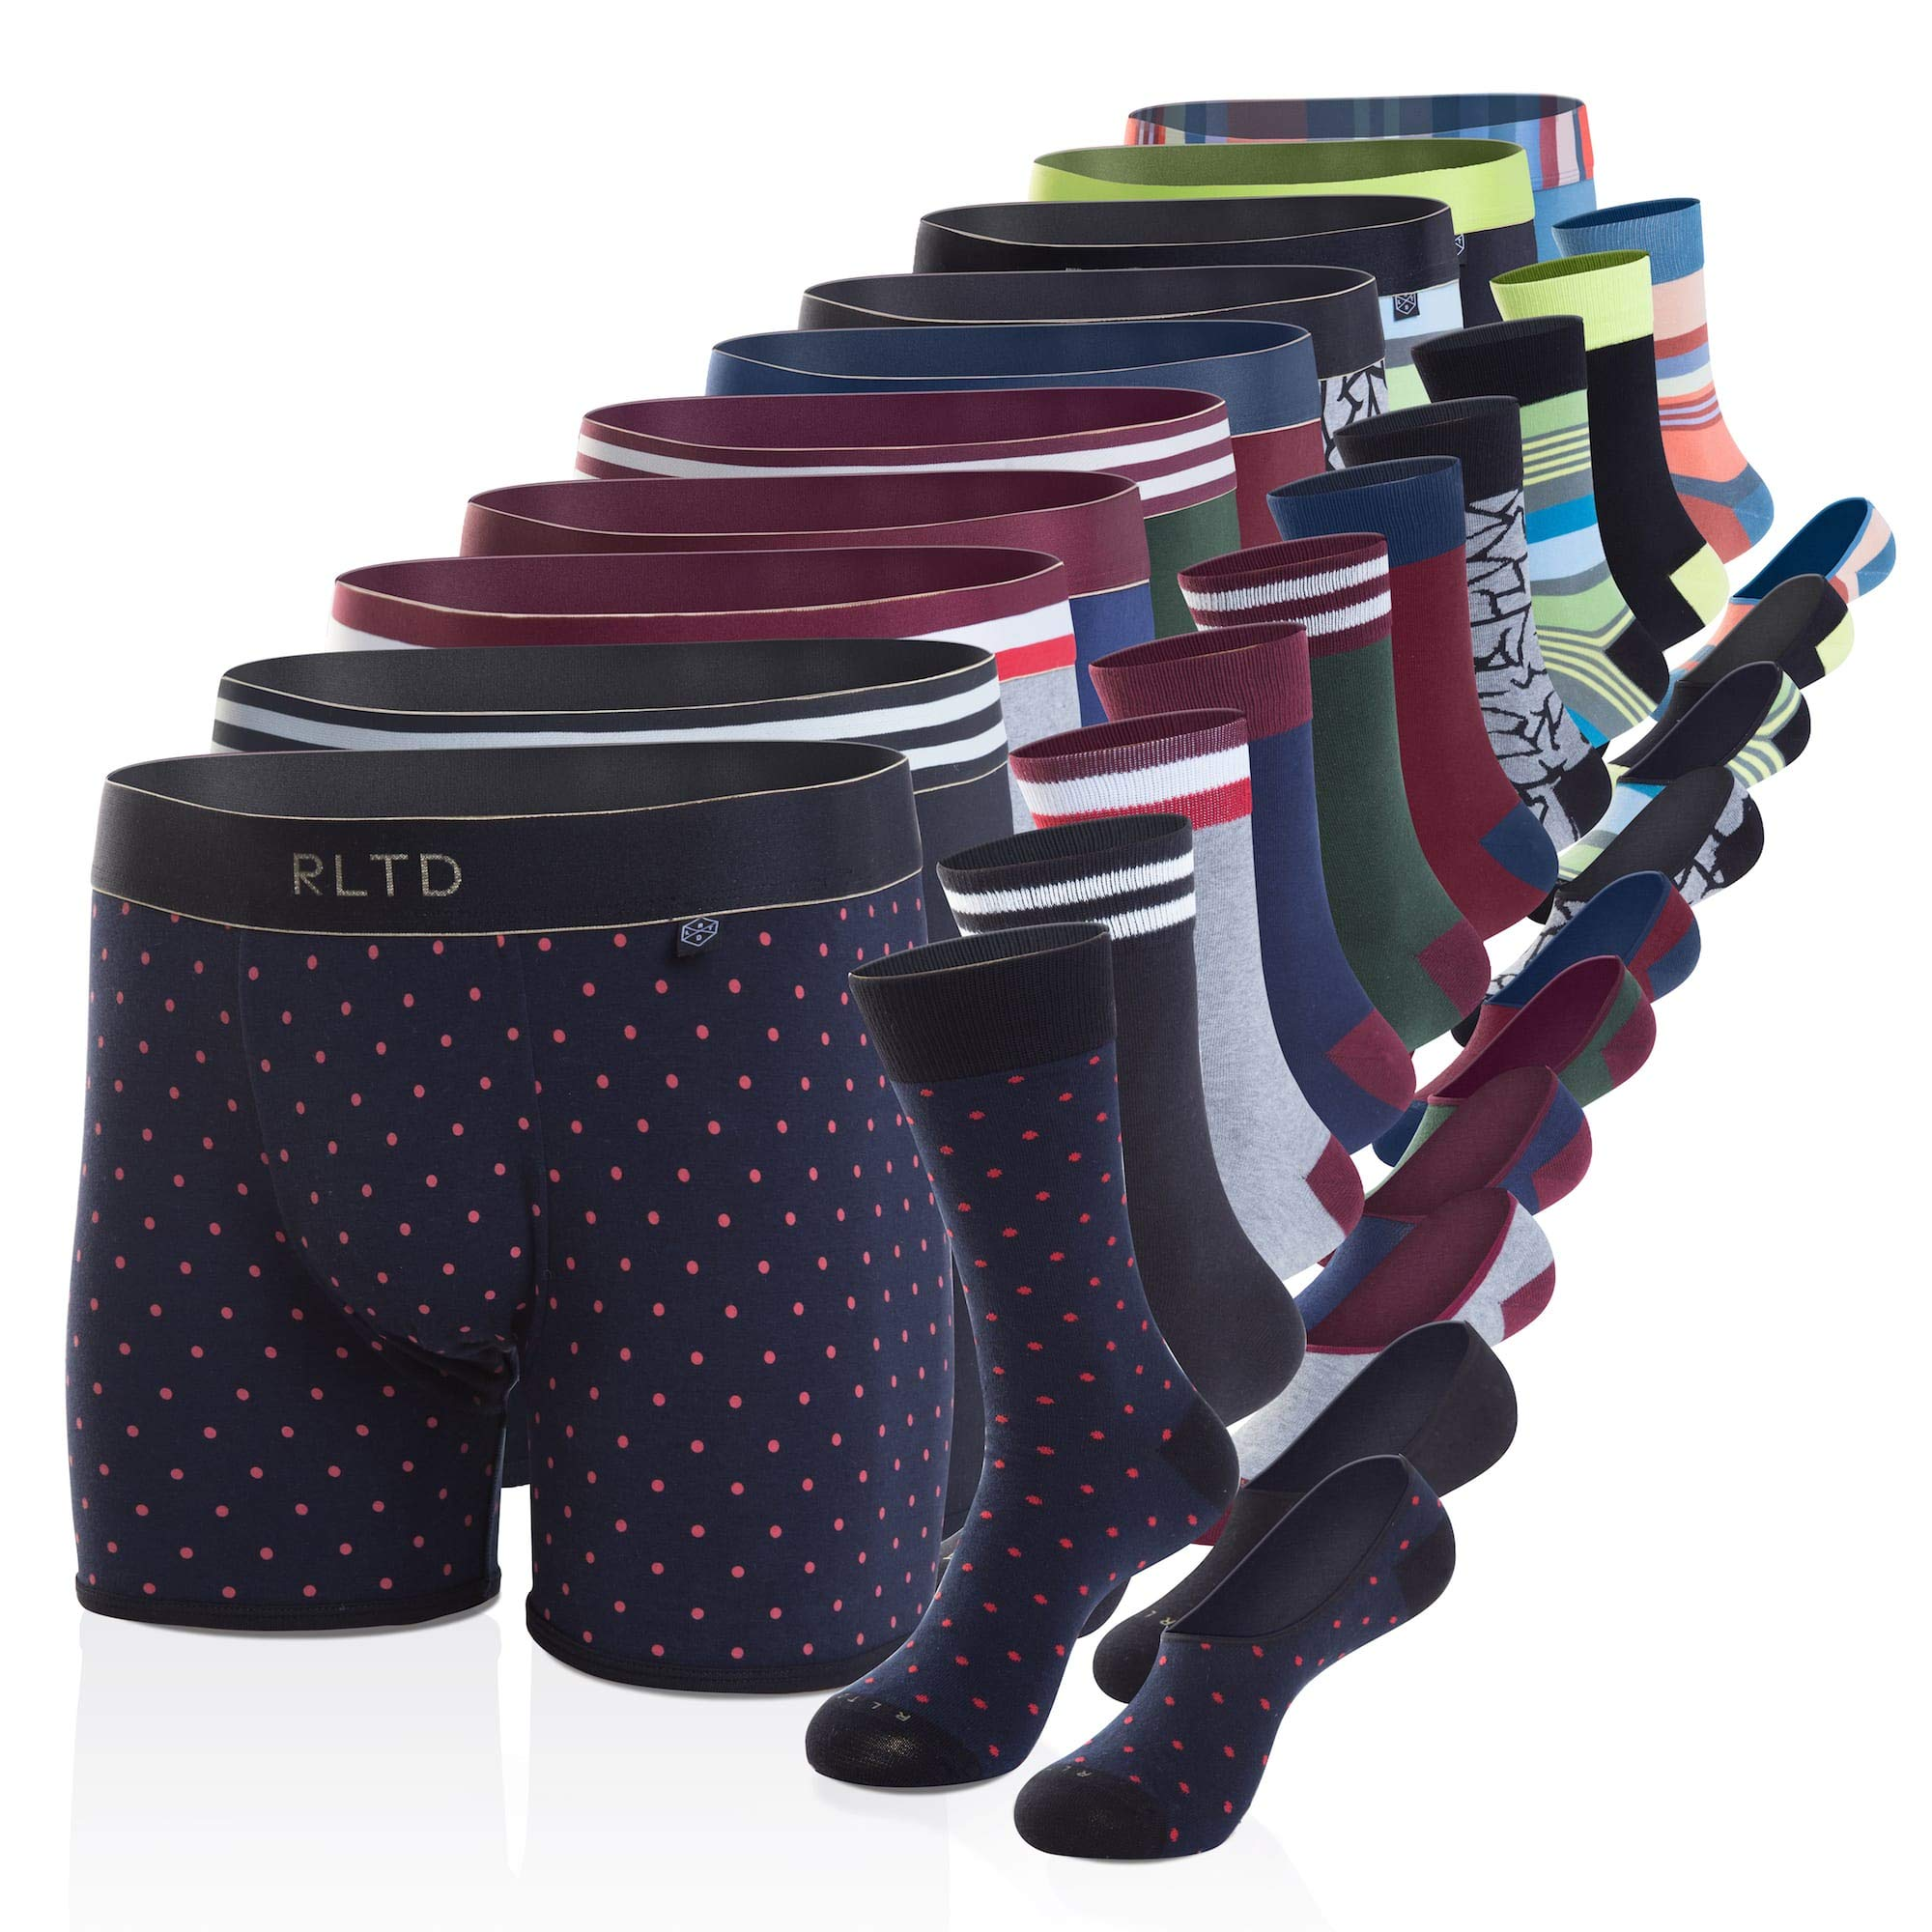 Related Garments Men's Matching Socks, No-Show Socks and Boxer Briefs: The Long Week 30 Piece Set LG